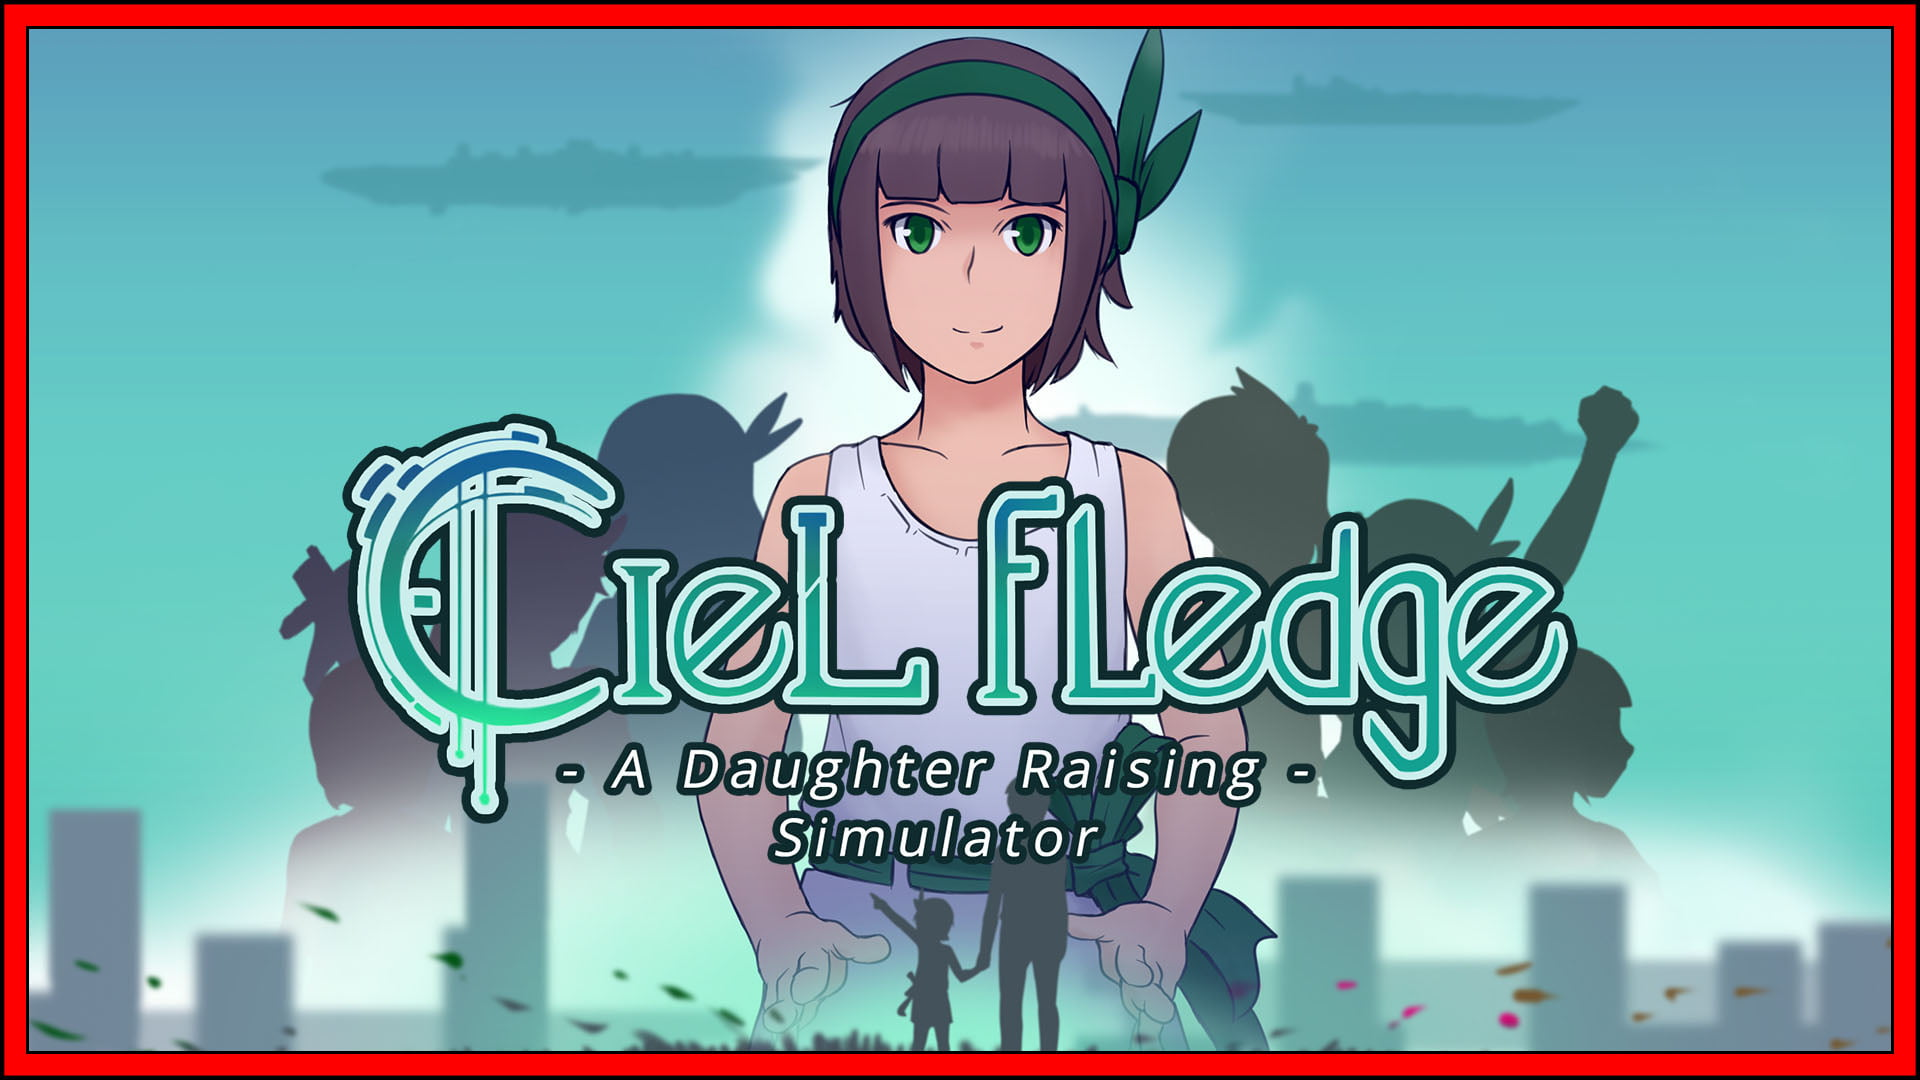 Ciel Fledge Fi3